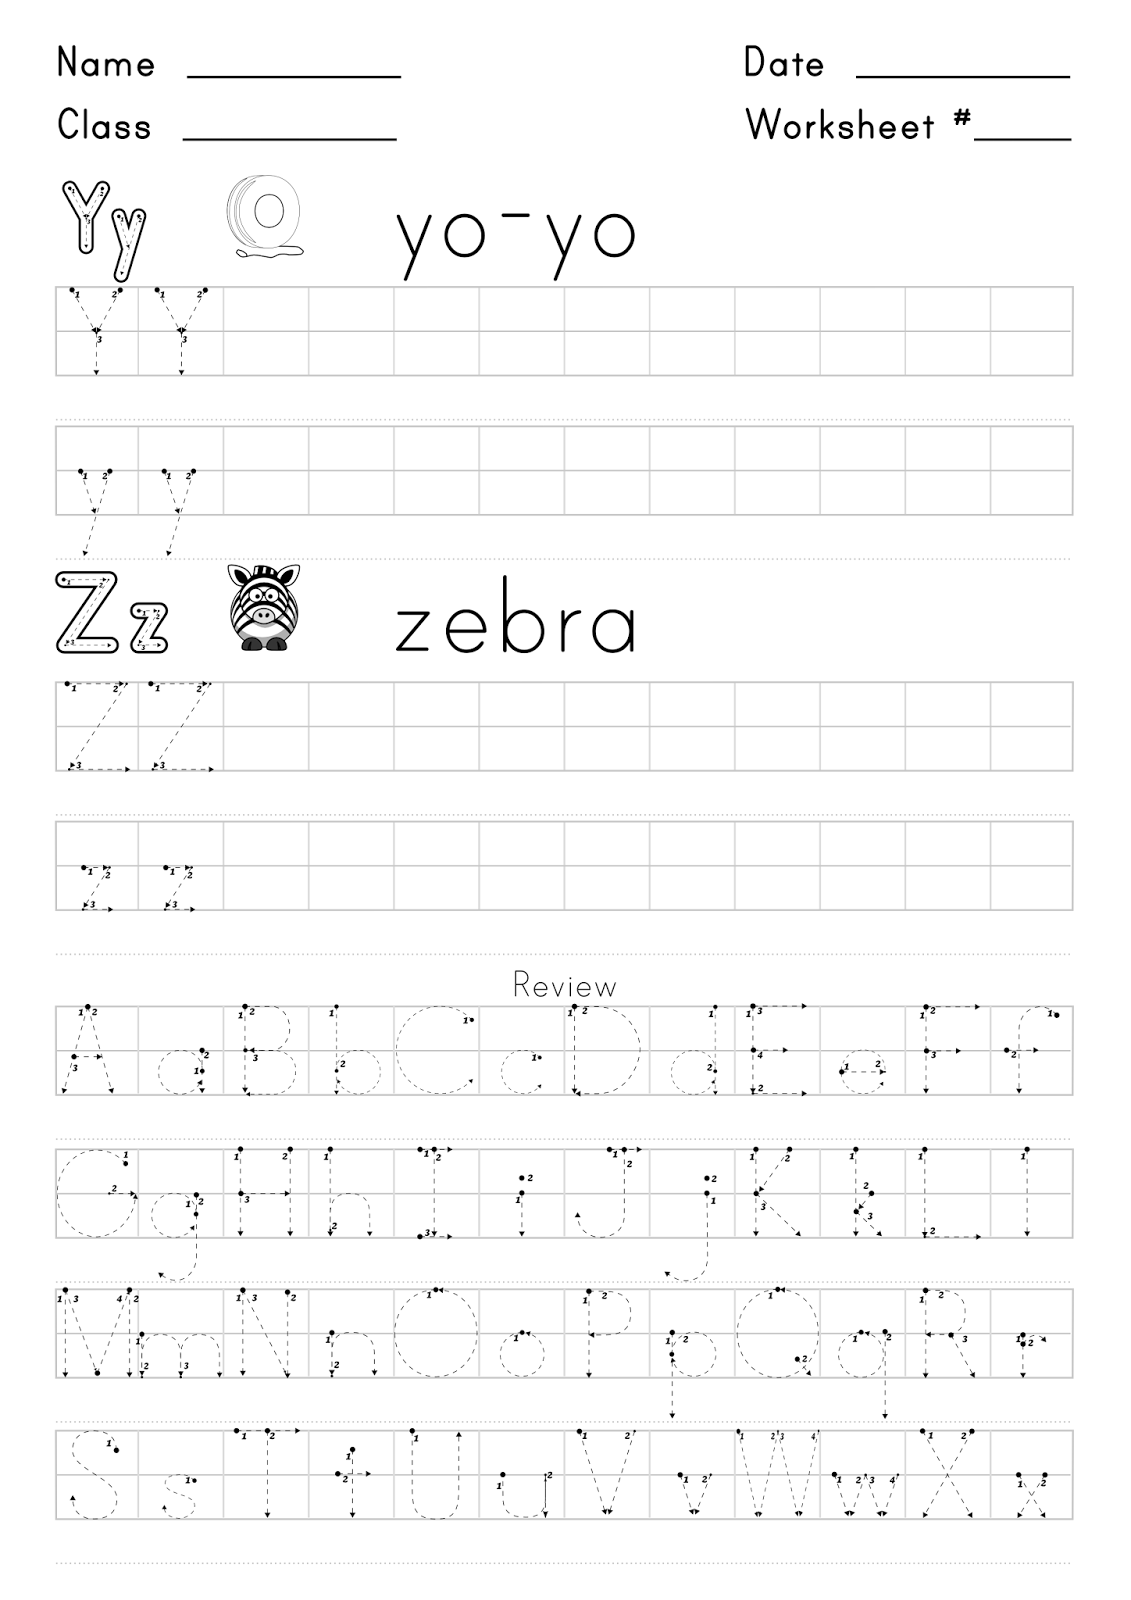 worksheet Letter Y Worksheet worksheet for writing the letters y and z super english kid purpose of this is to help students practice how use worksheet